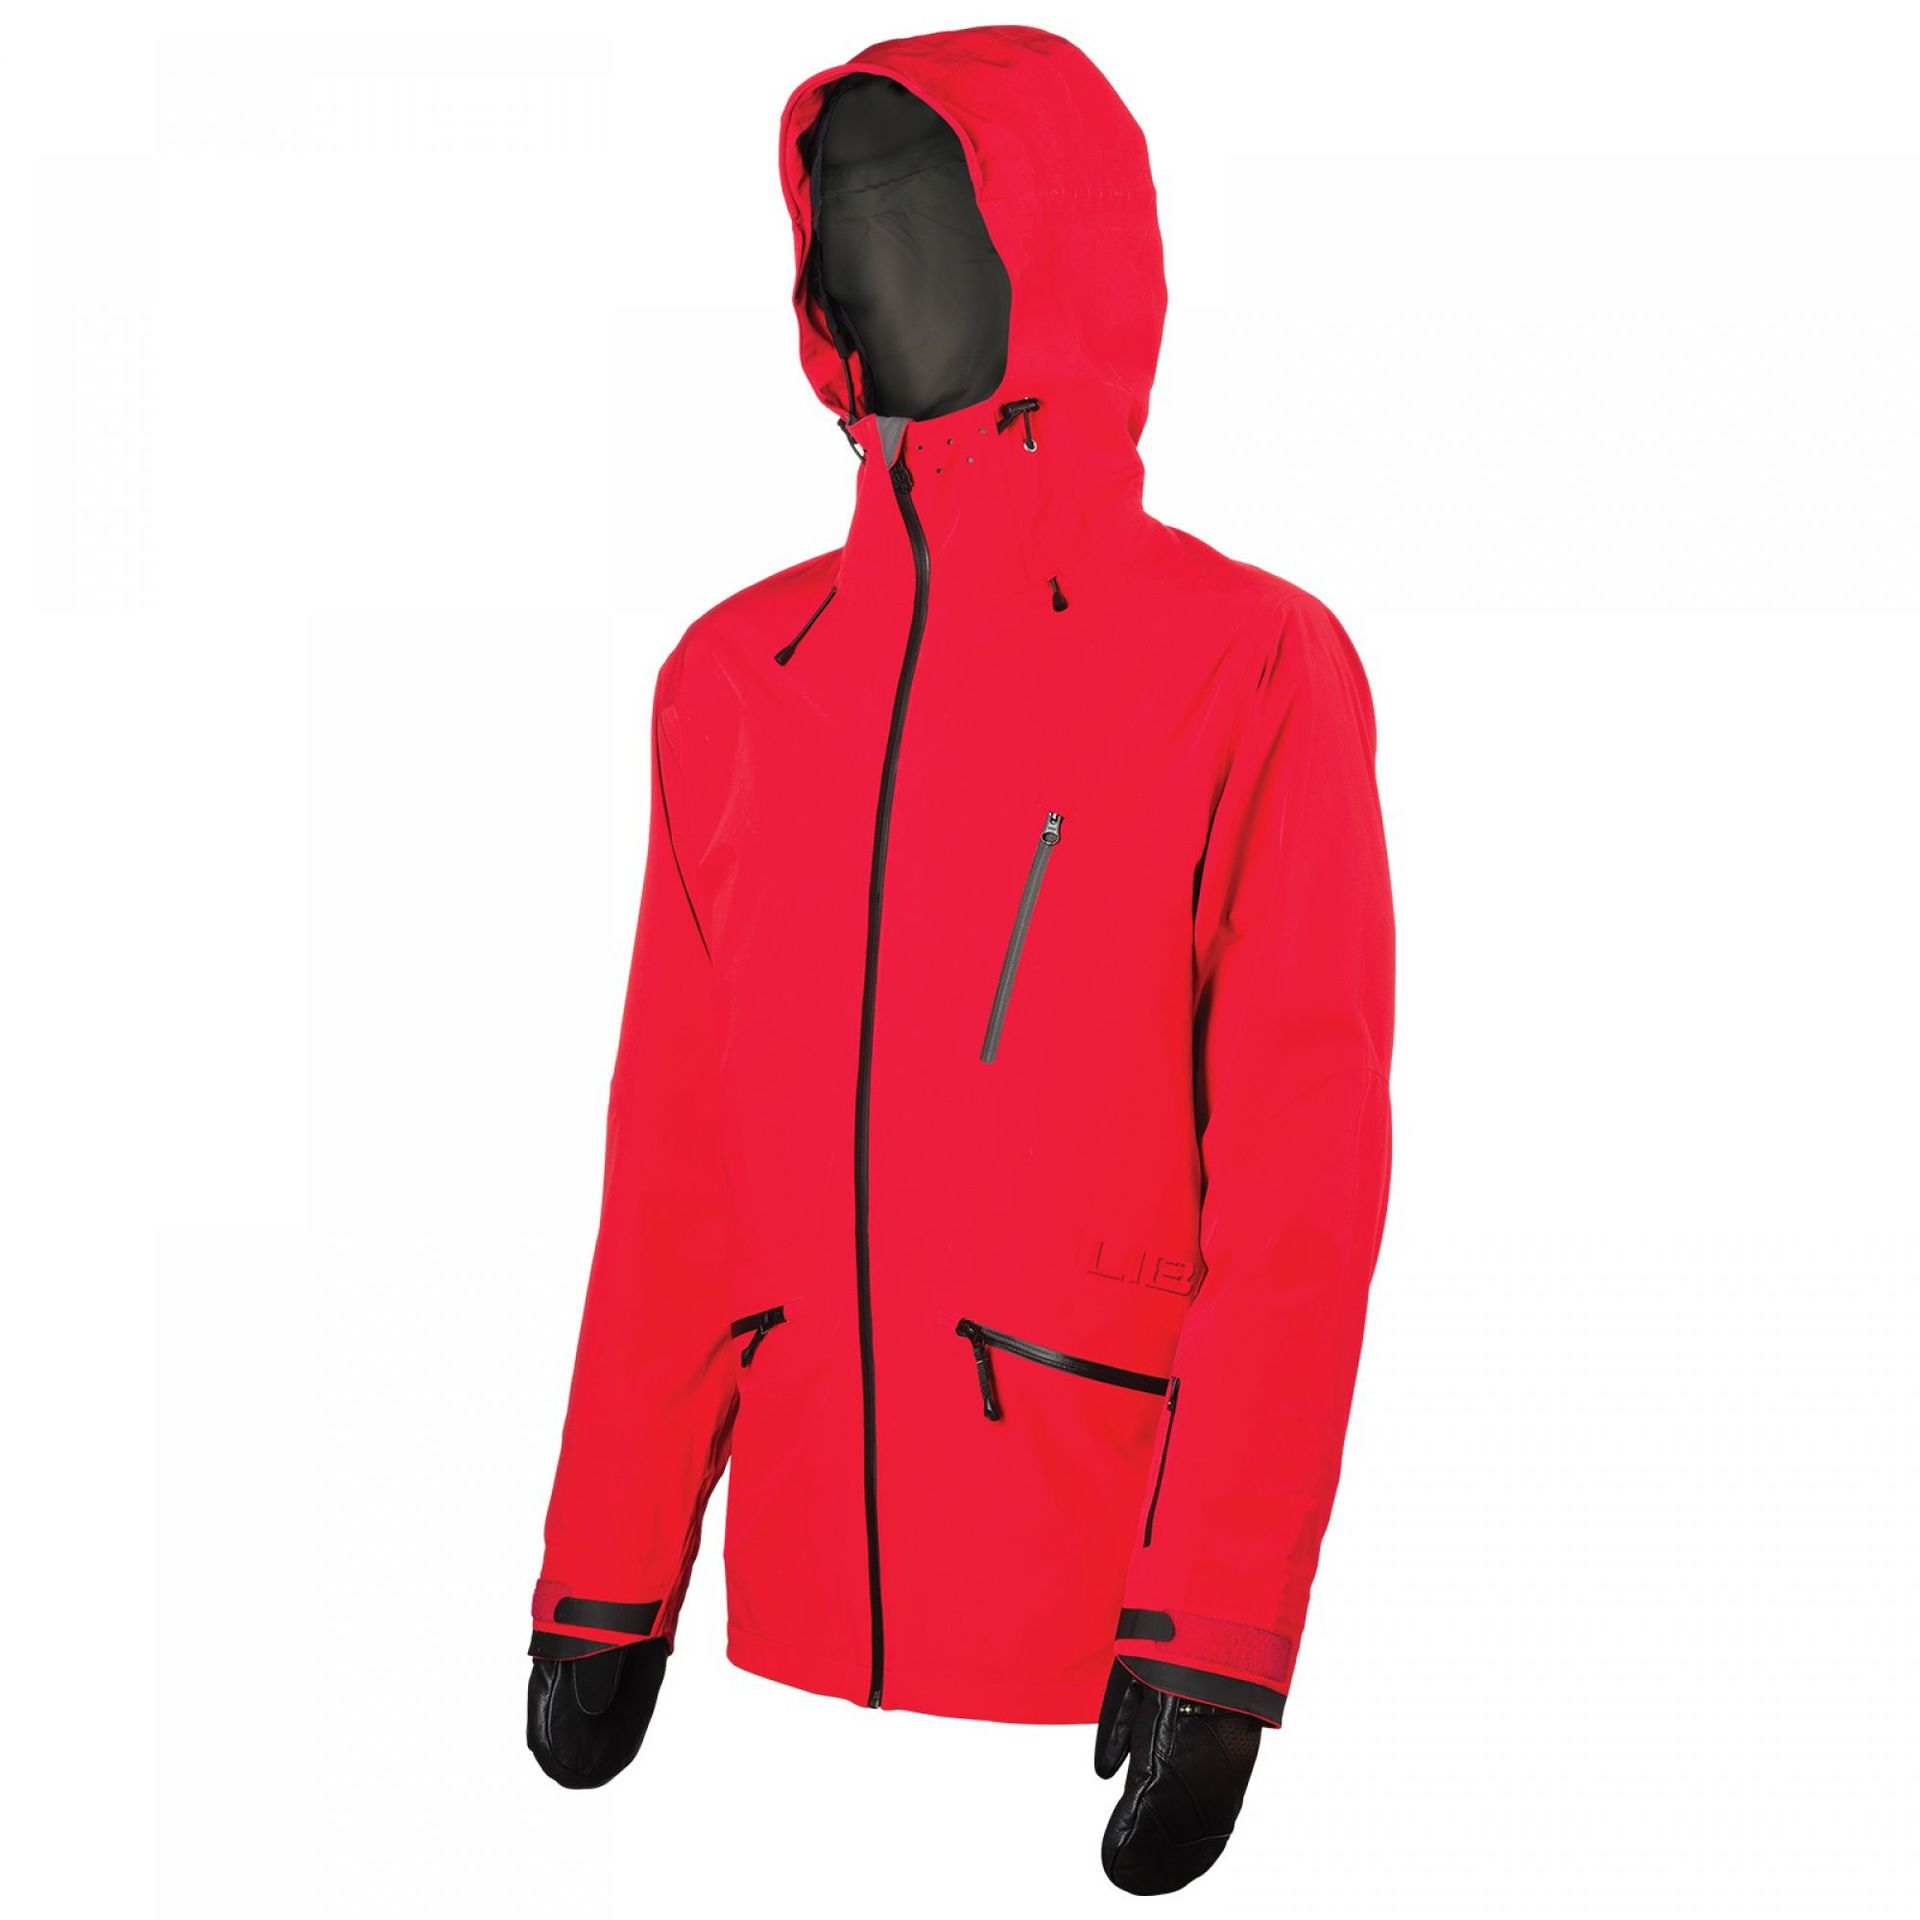 KURTKA LIB TECH STRAIT SCIENCE 3L JACKET RED